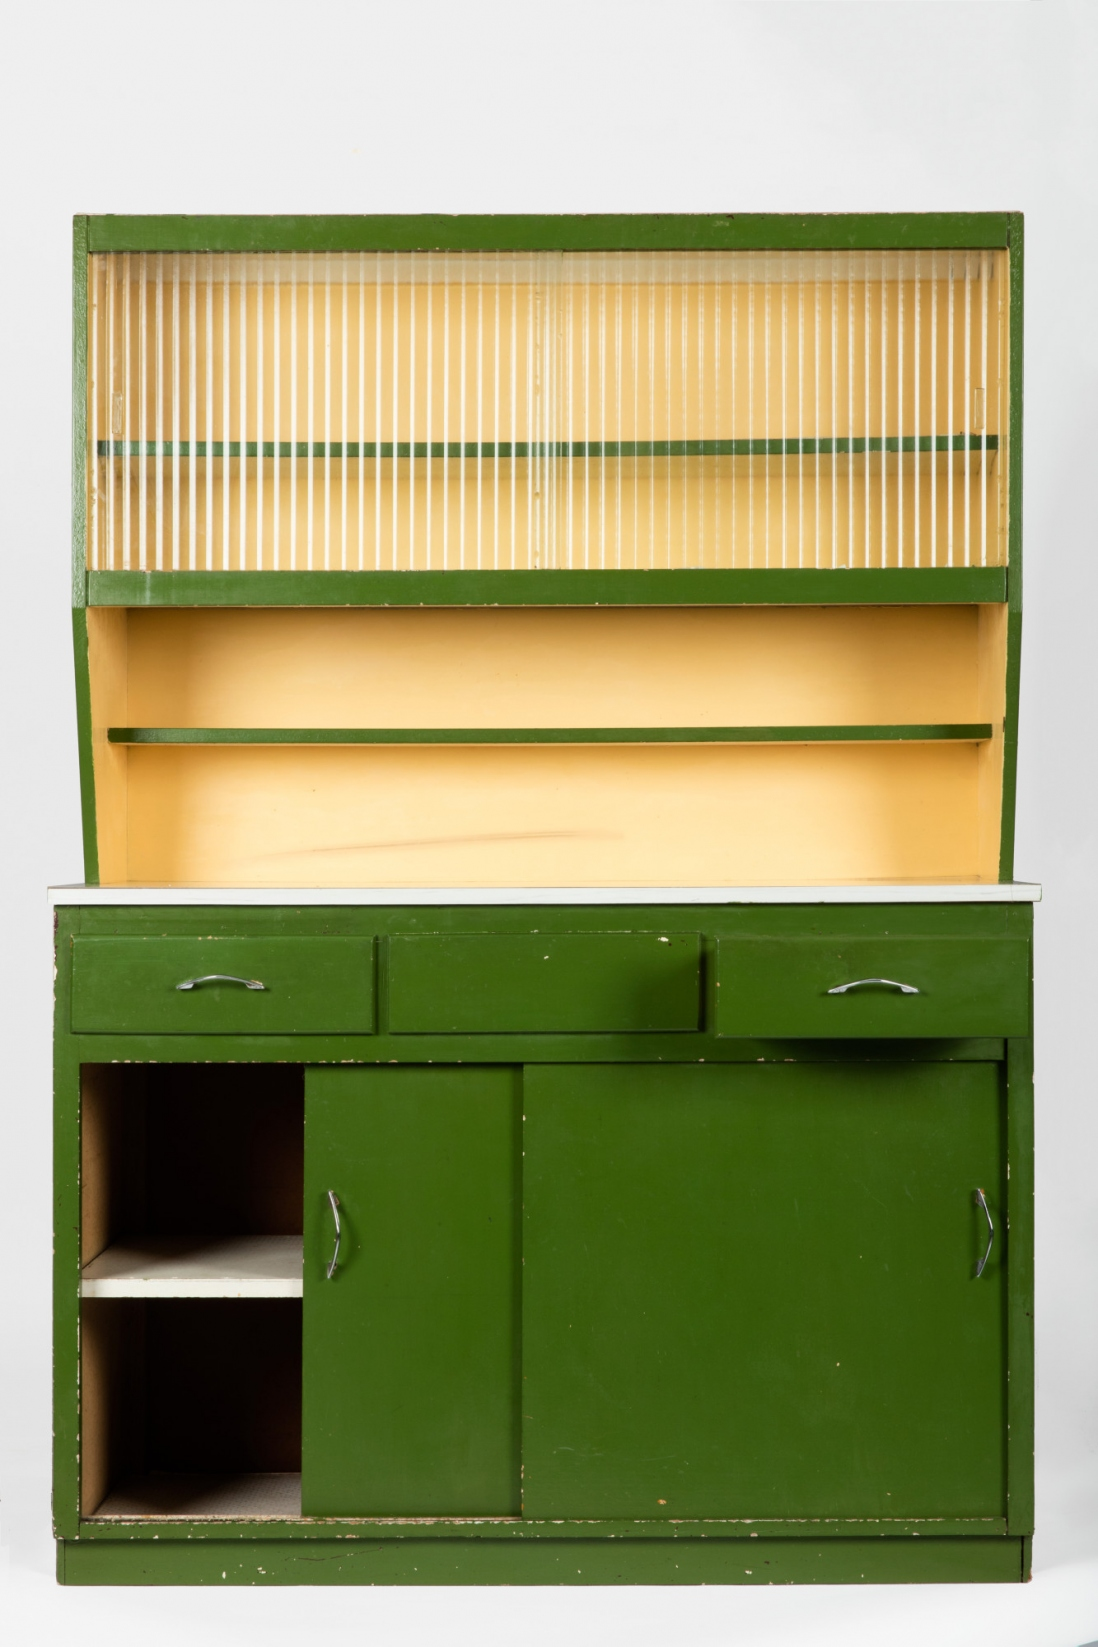 Green drawers with cream shelving above.